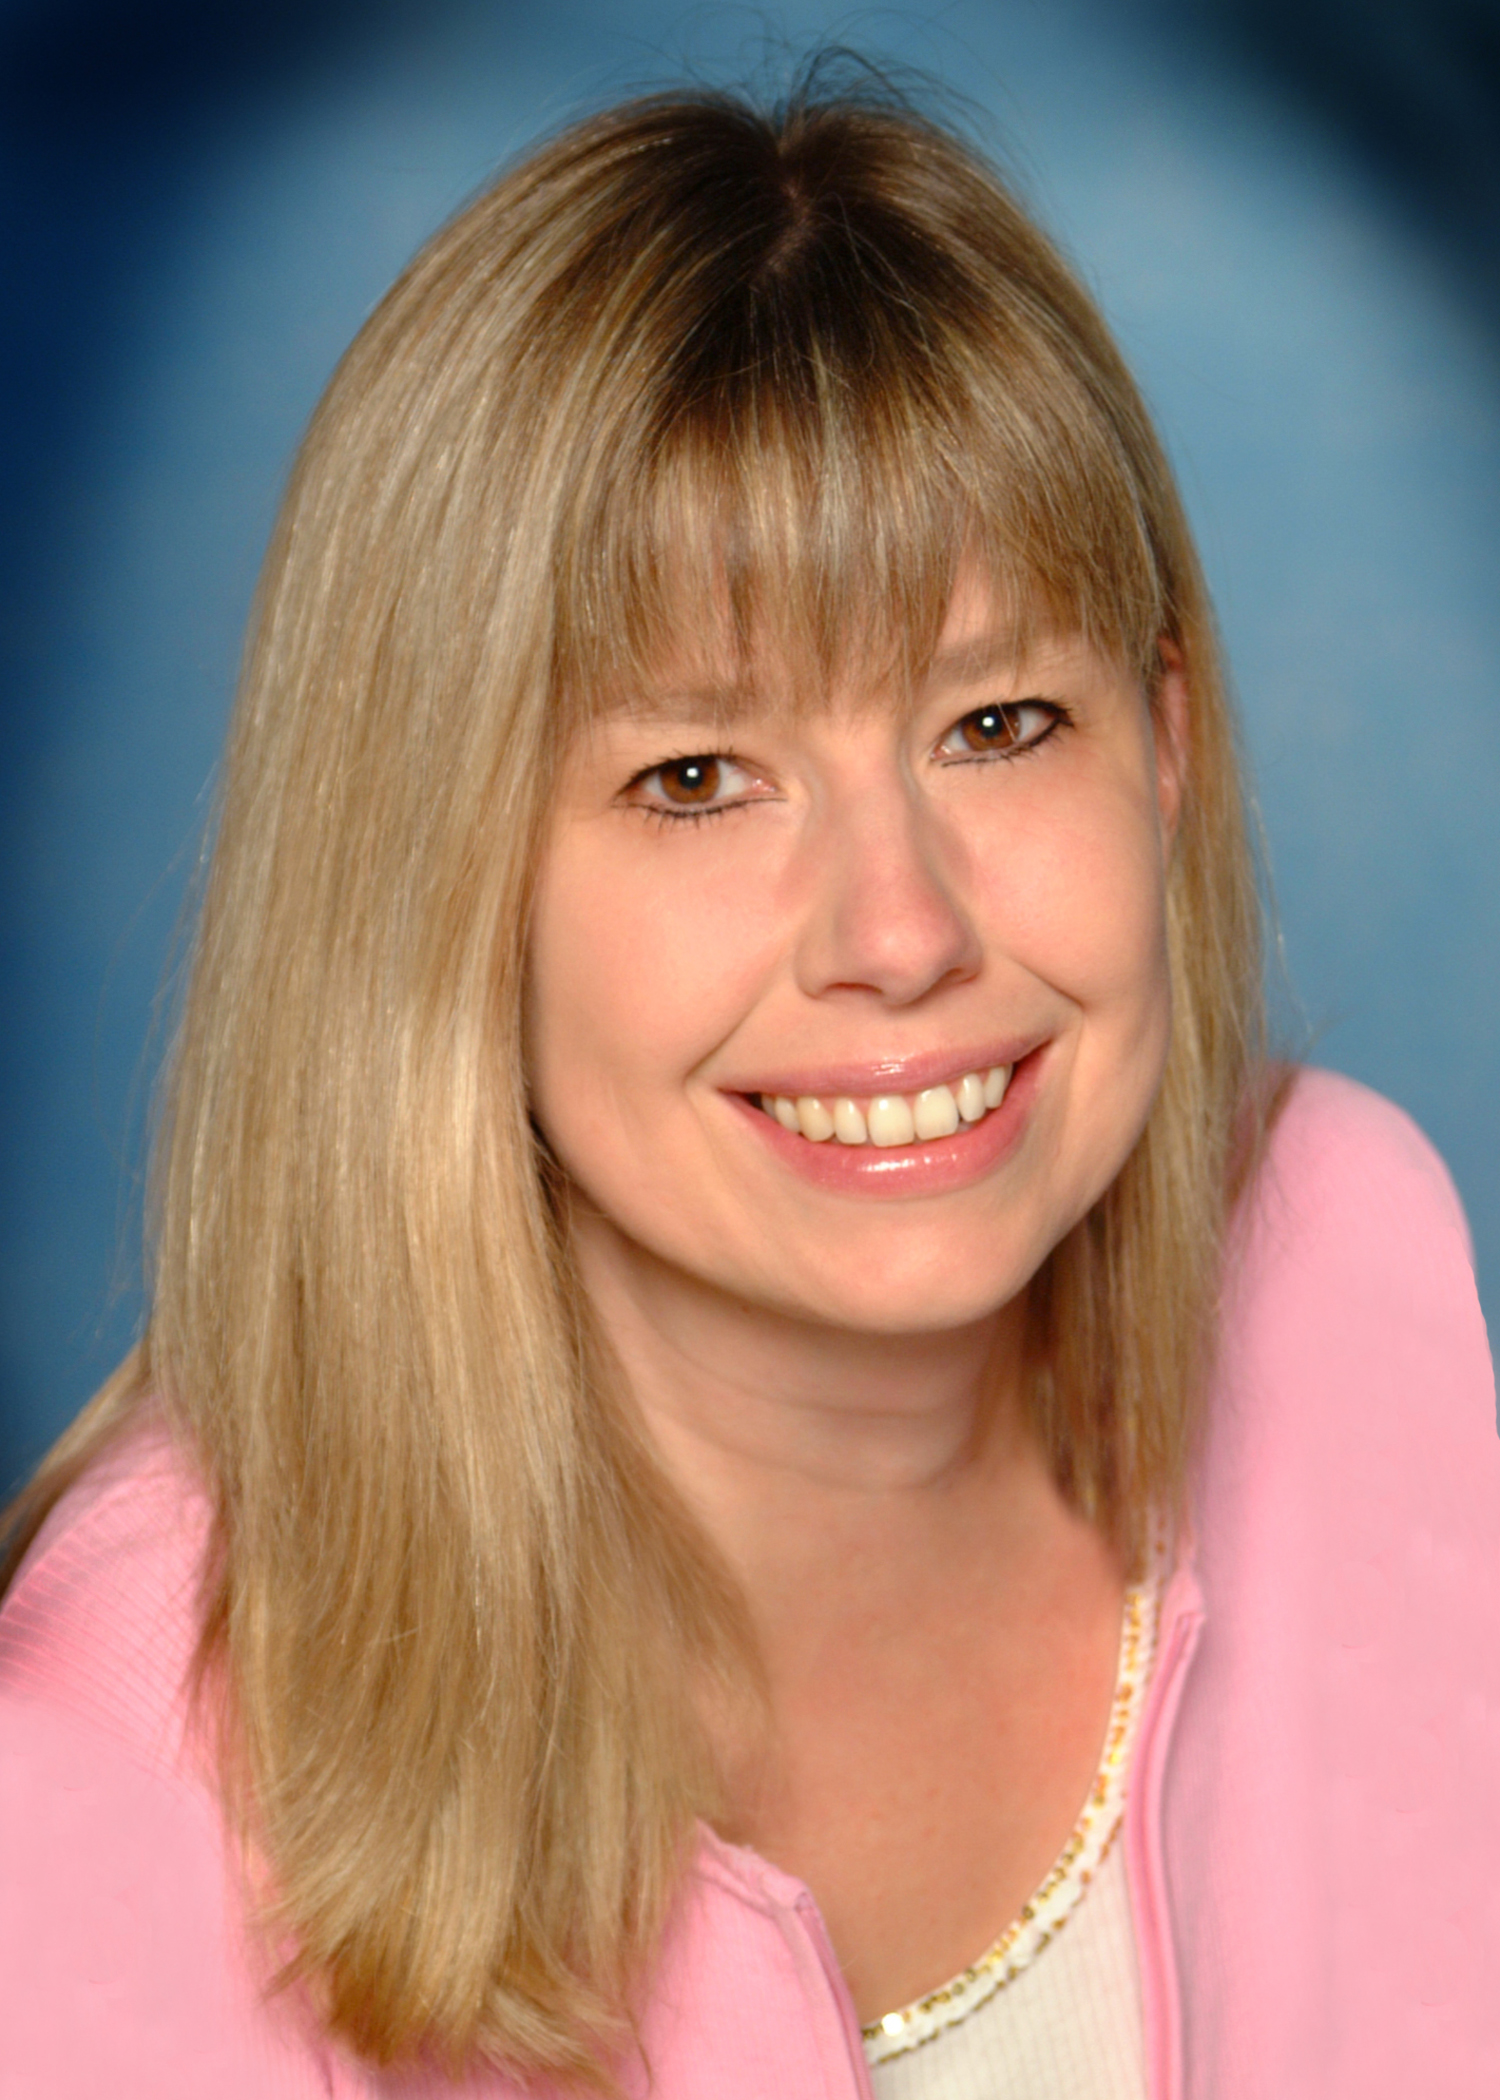 Dre Julie Carrier